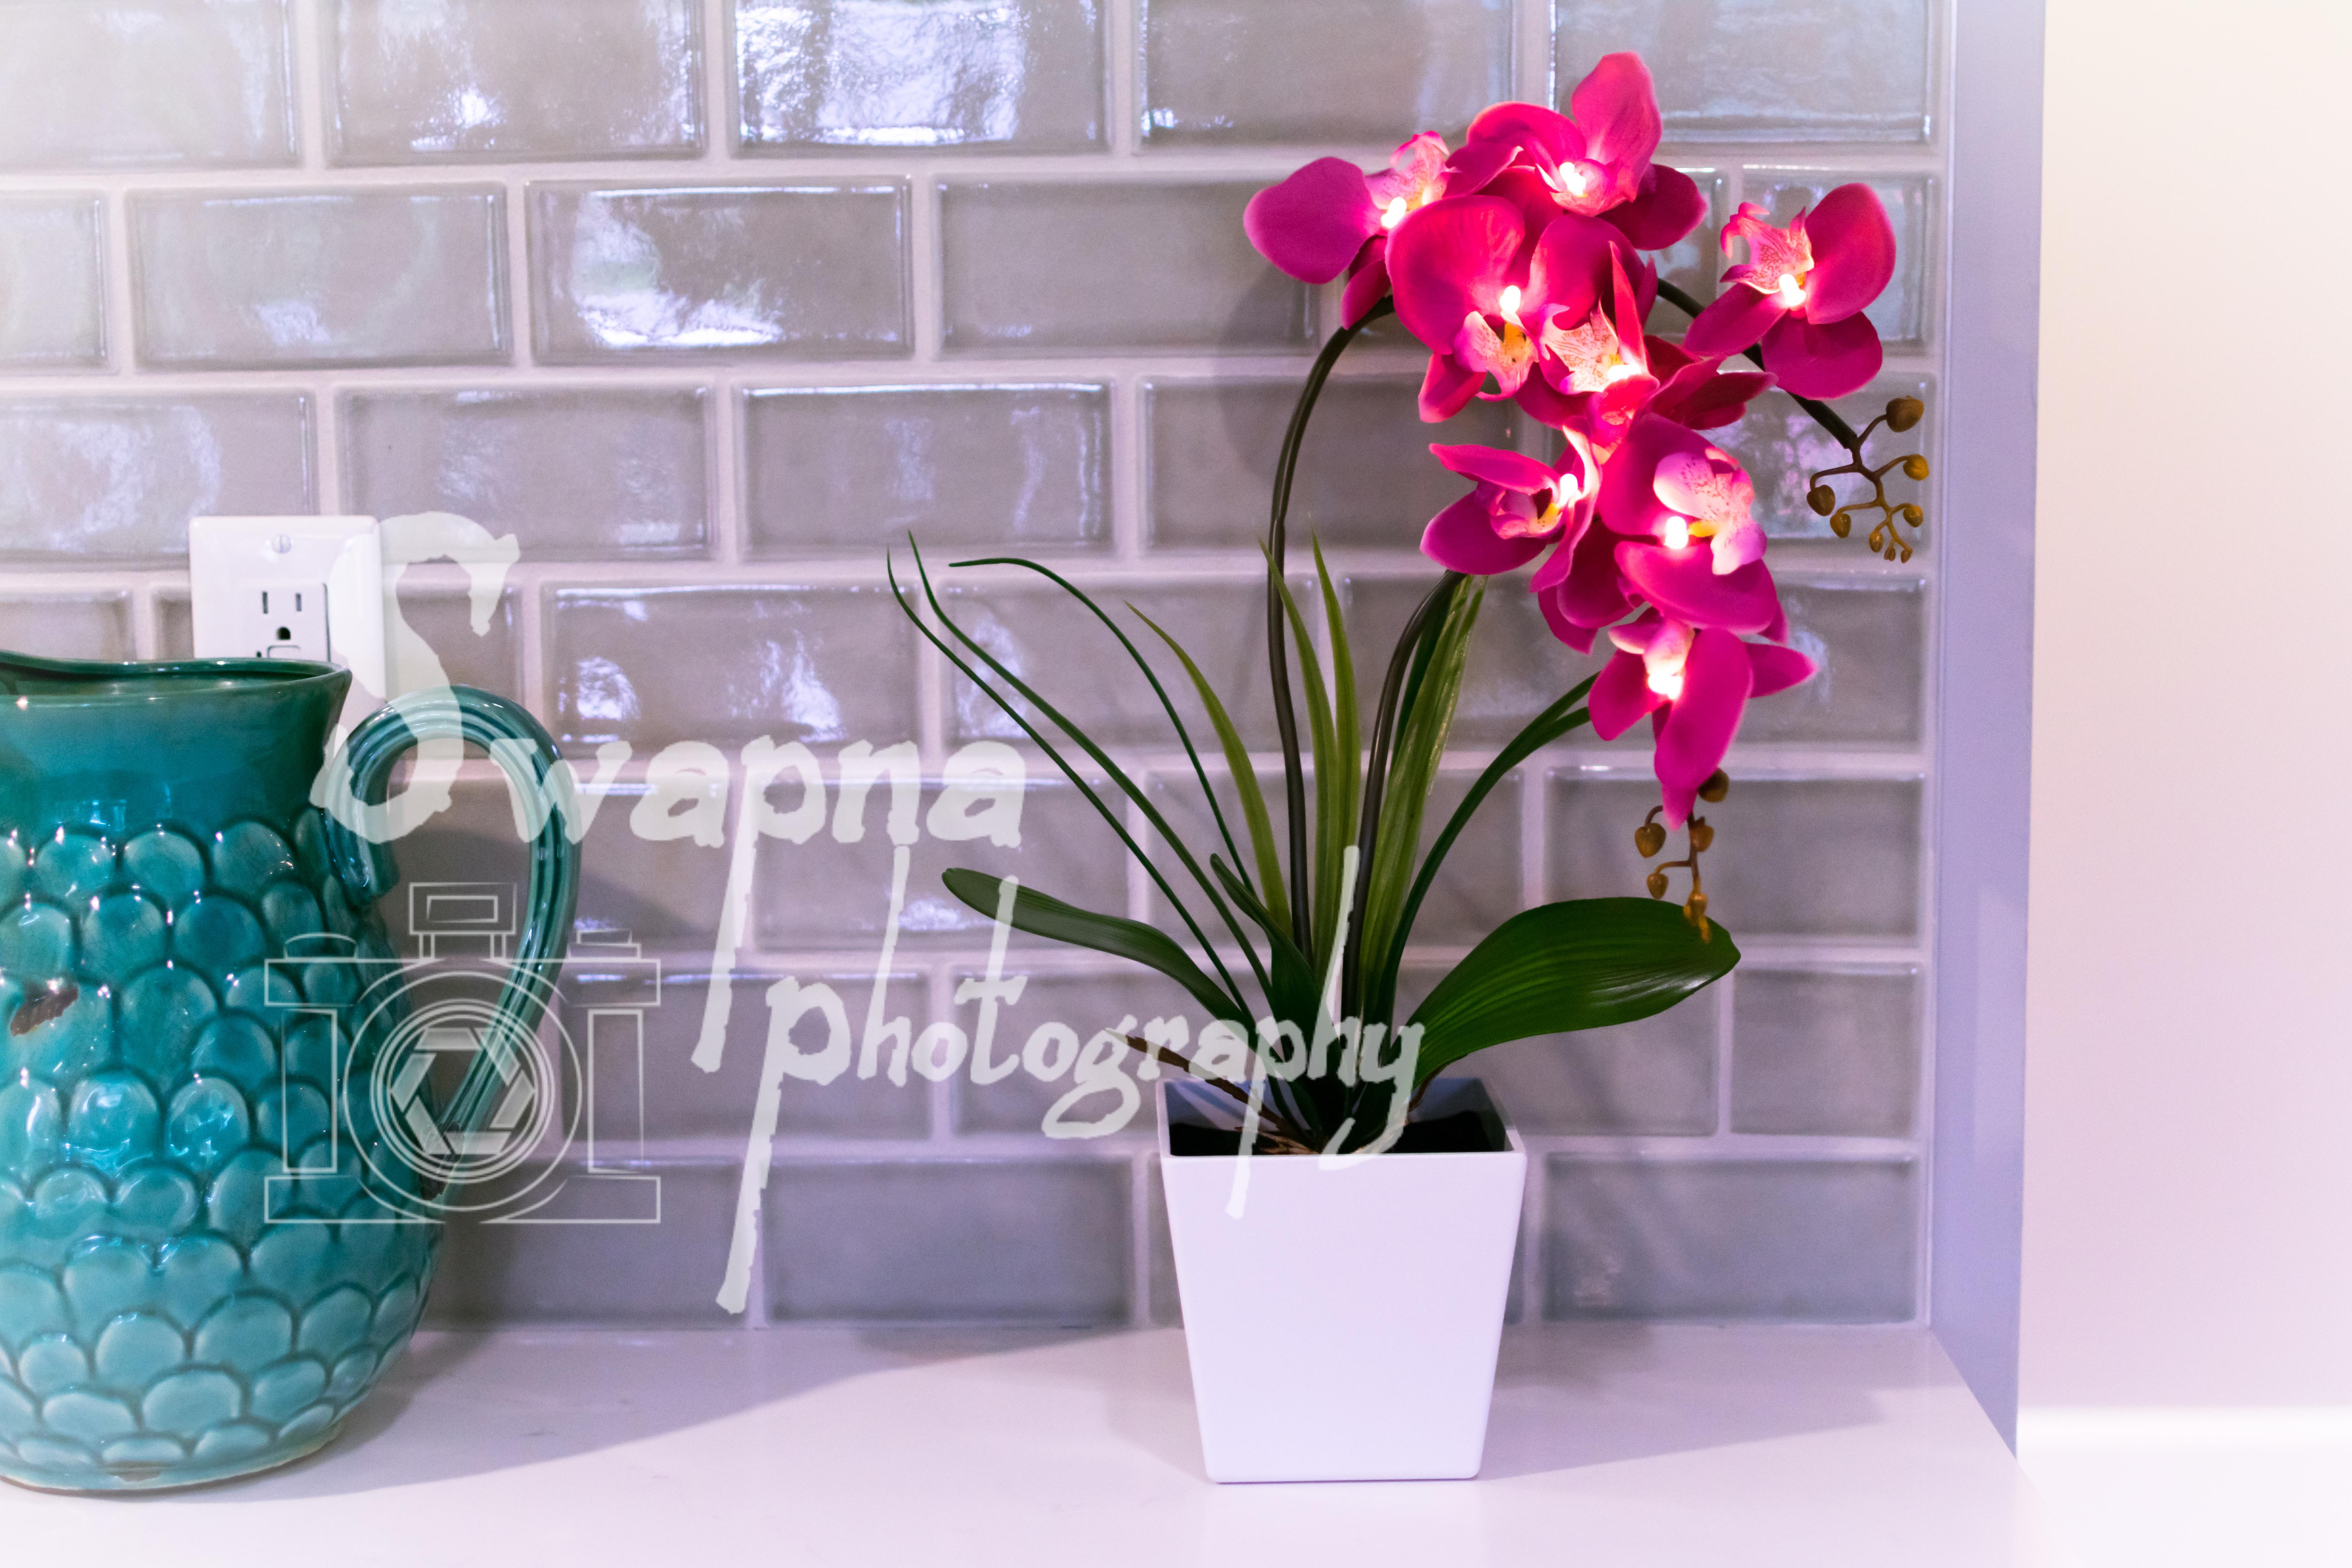 do Product photography on Lifestyle and white background for eCommerce,online business